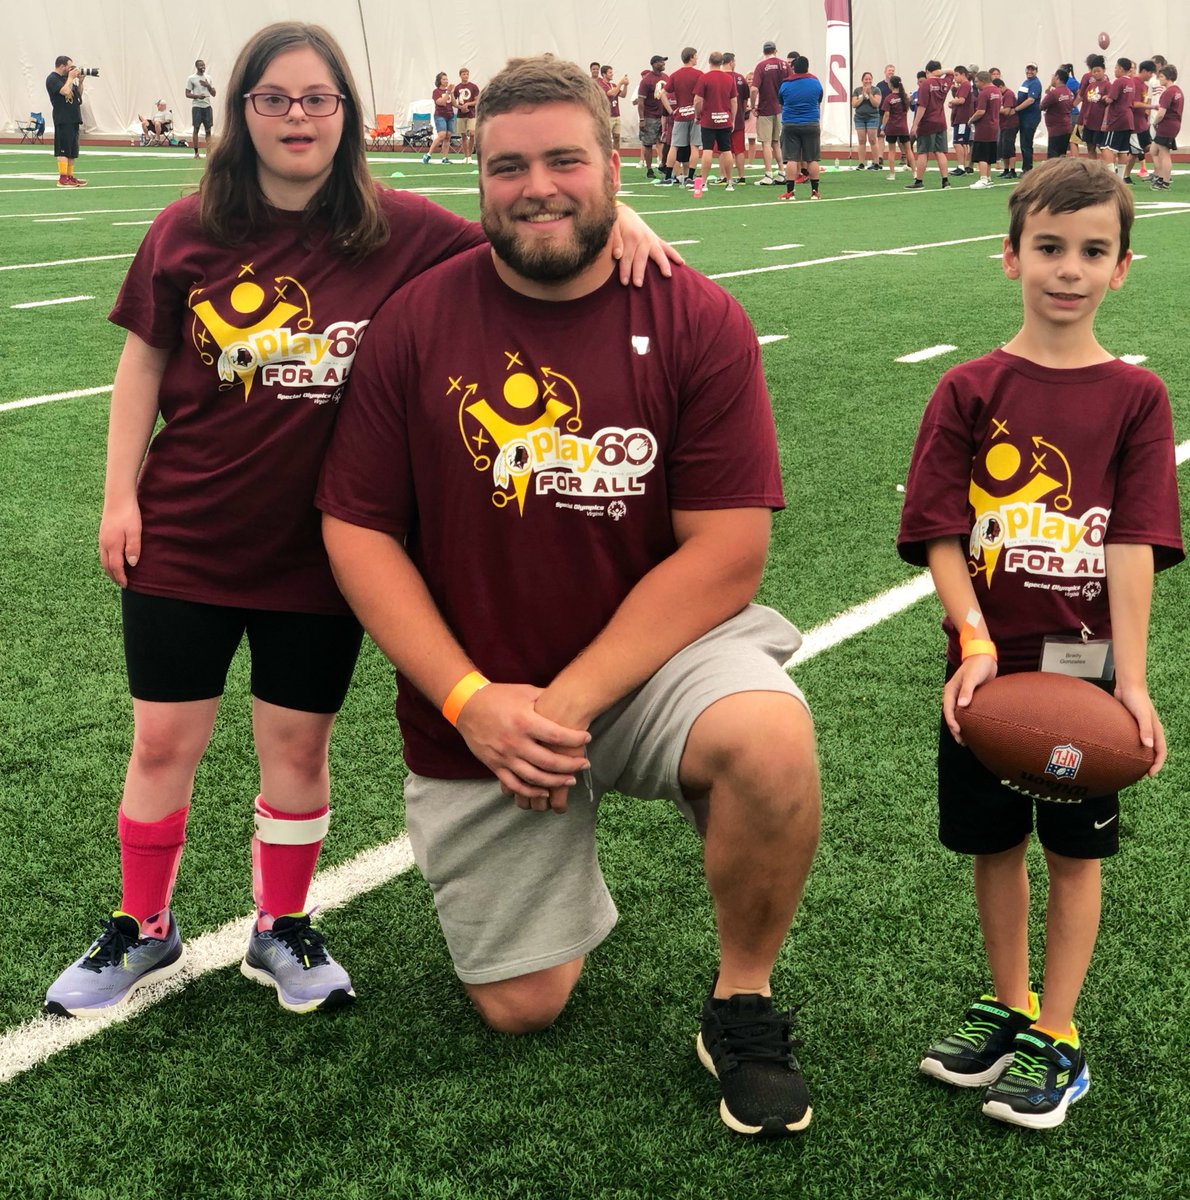 Today, we hosted more than 1️⃣0️⃣0️⃣ @SOlympicsVA & @DreamsforkidsDC athletes for a Football Clinic at Redskins Park 🏈 Special guests included #Redskins @DhaSickest, @WesleyMartin76, JP Holtz and Alumni @Ky3fOUR, Khary Campbell & Eddie Mason 💯 #RedskinsGiveBack #ChooseToInclude